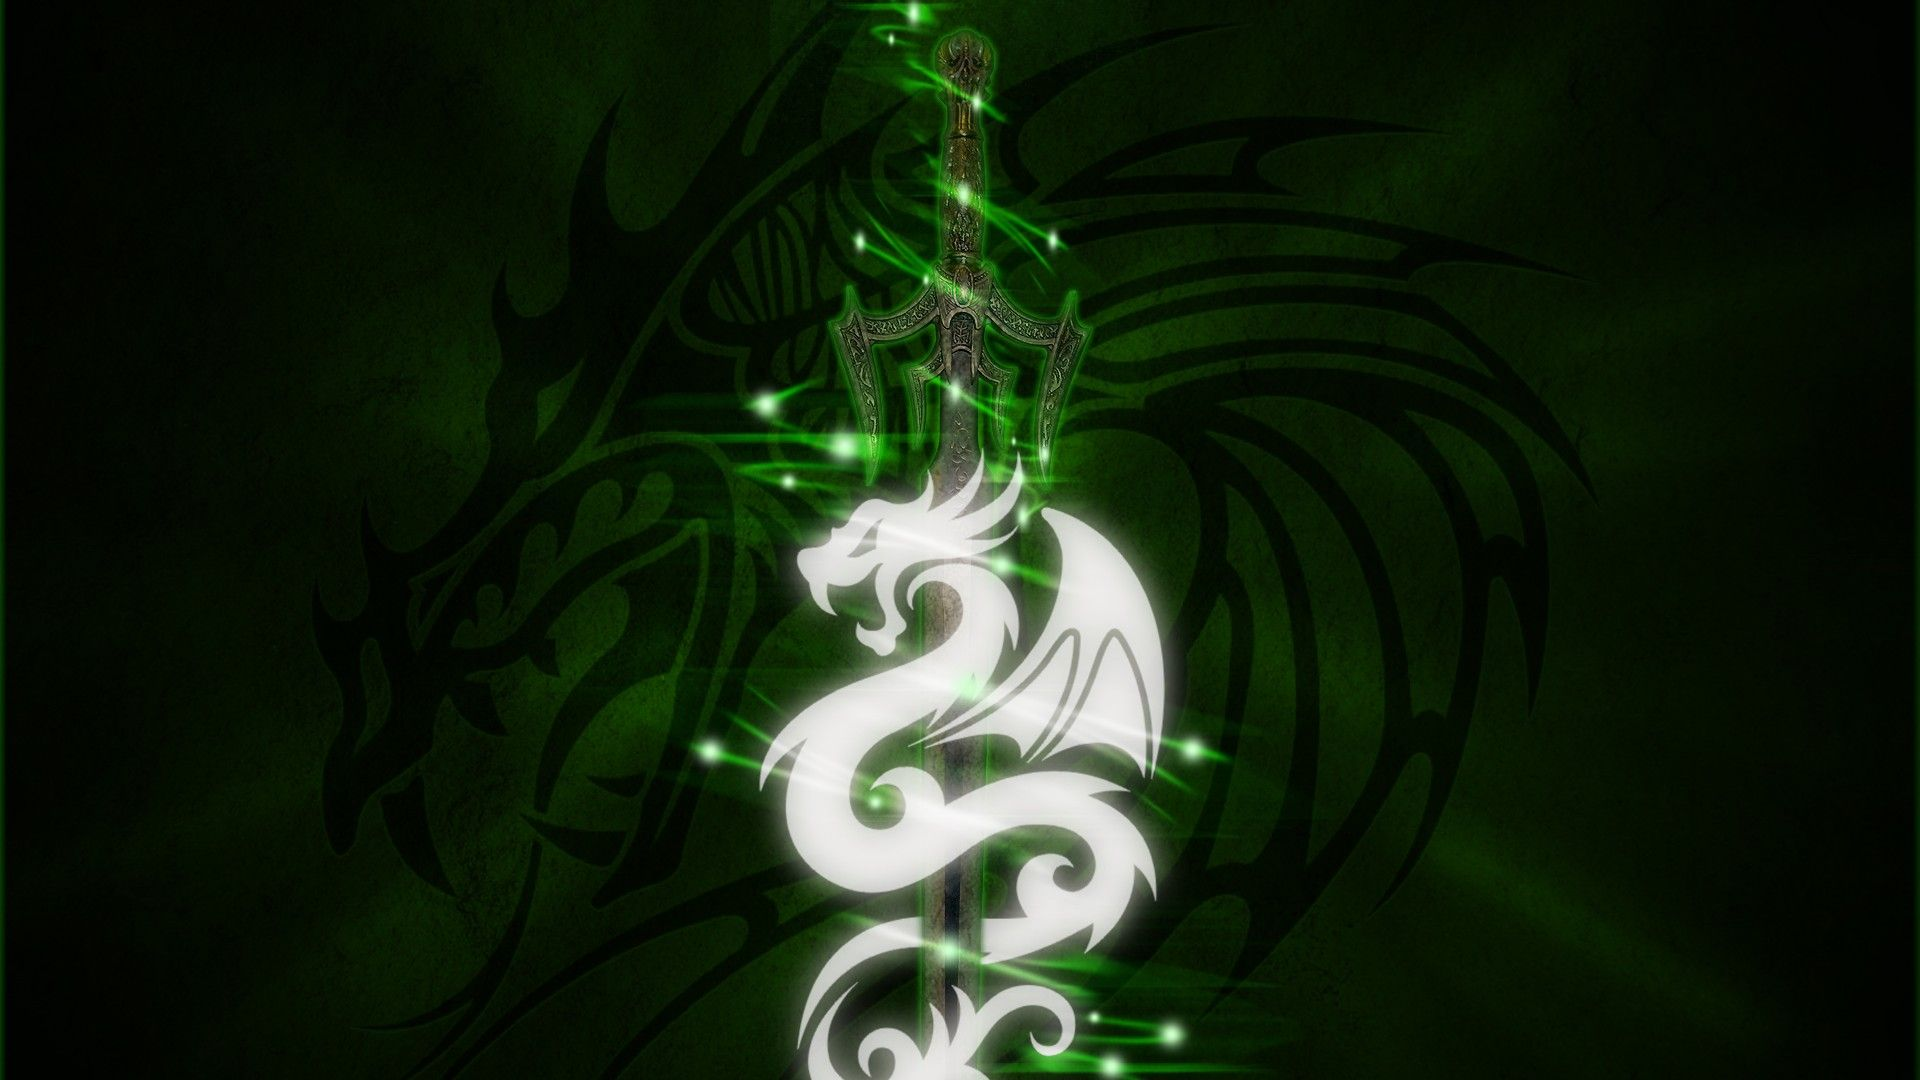 Green Dragon Wallpapers Top Free Green Dragon Backgrounds